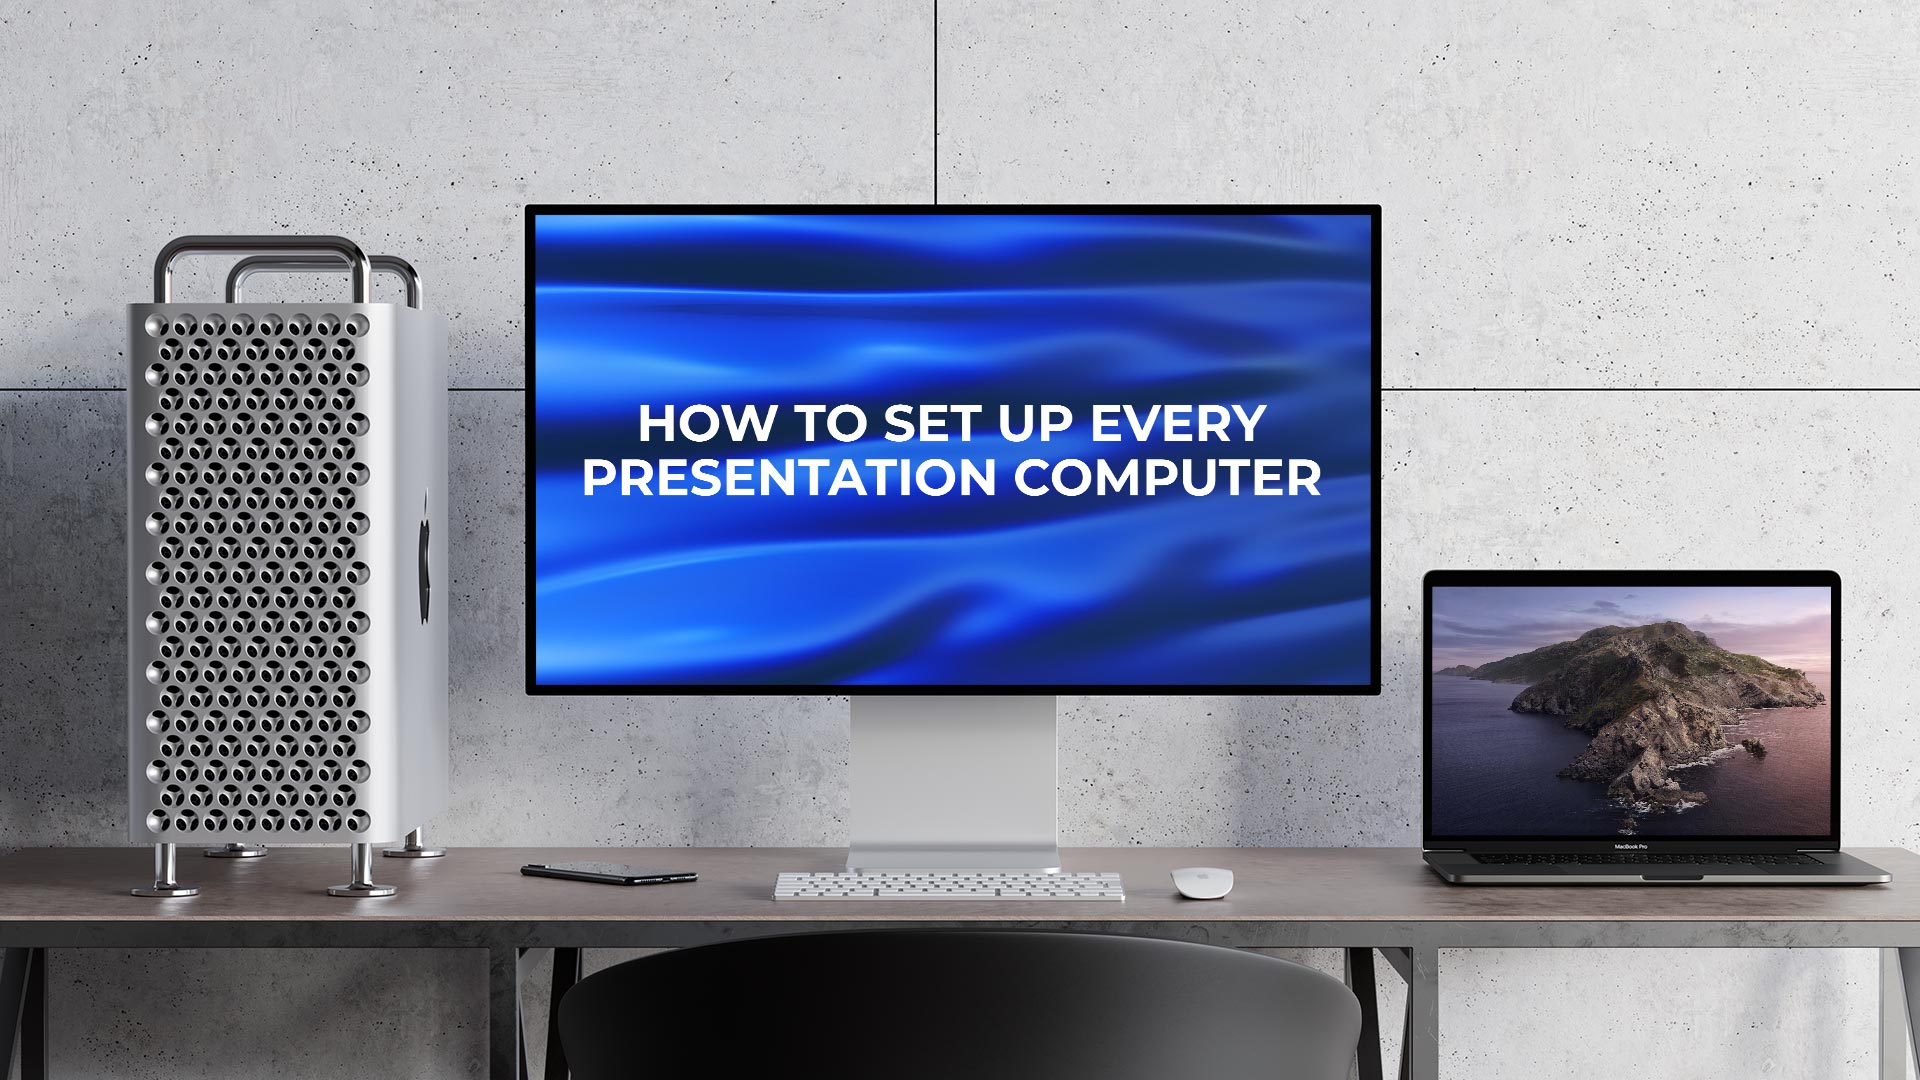 How To Set Up Every Presentation Computer